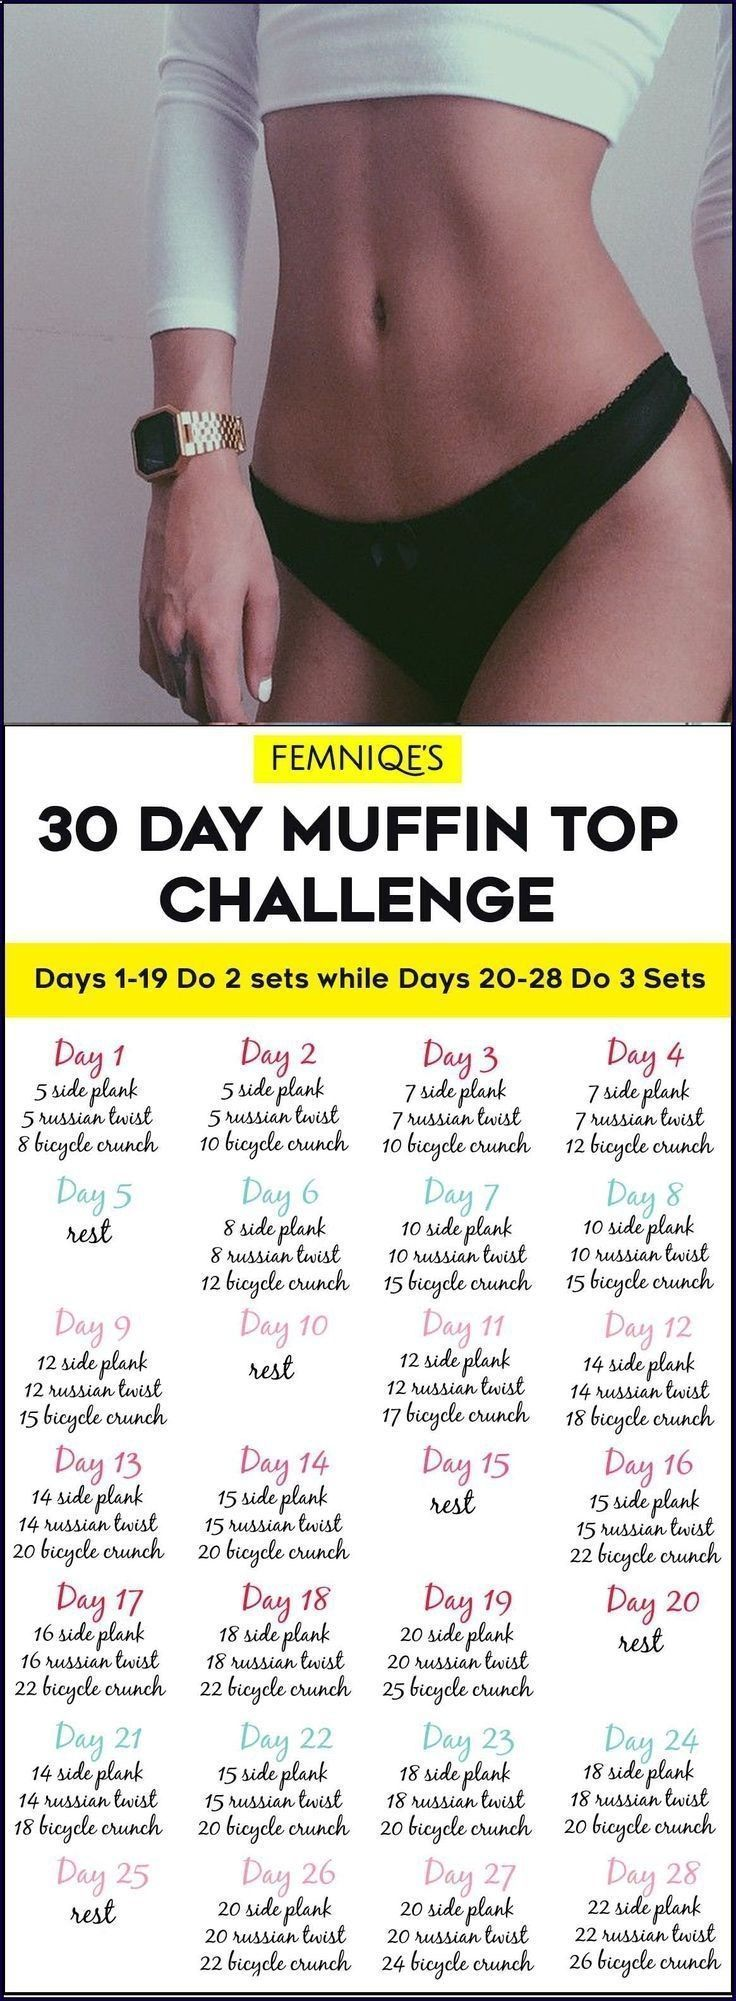 3 Week Diet Loss Weight 30 Day Muffin Top Challenge Workout Exercise Calendar Love Handles This 30 Day Muf Workout Calendar Workout Challenge Workout Routine